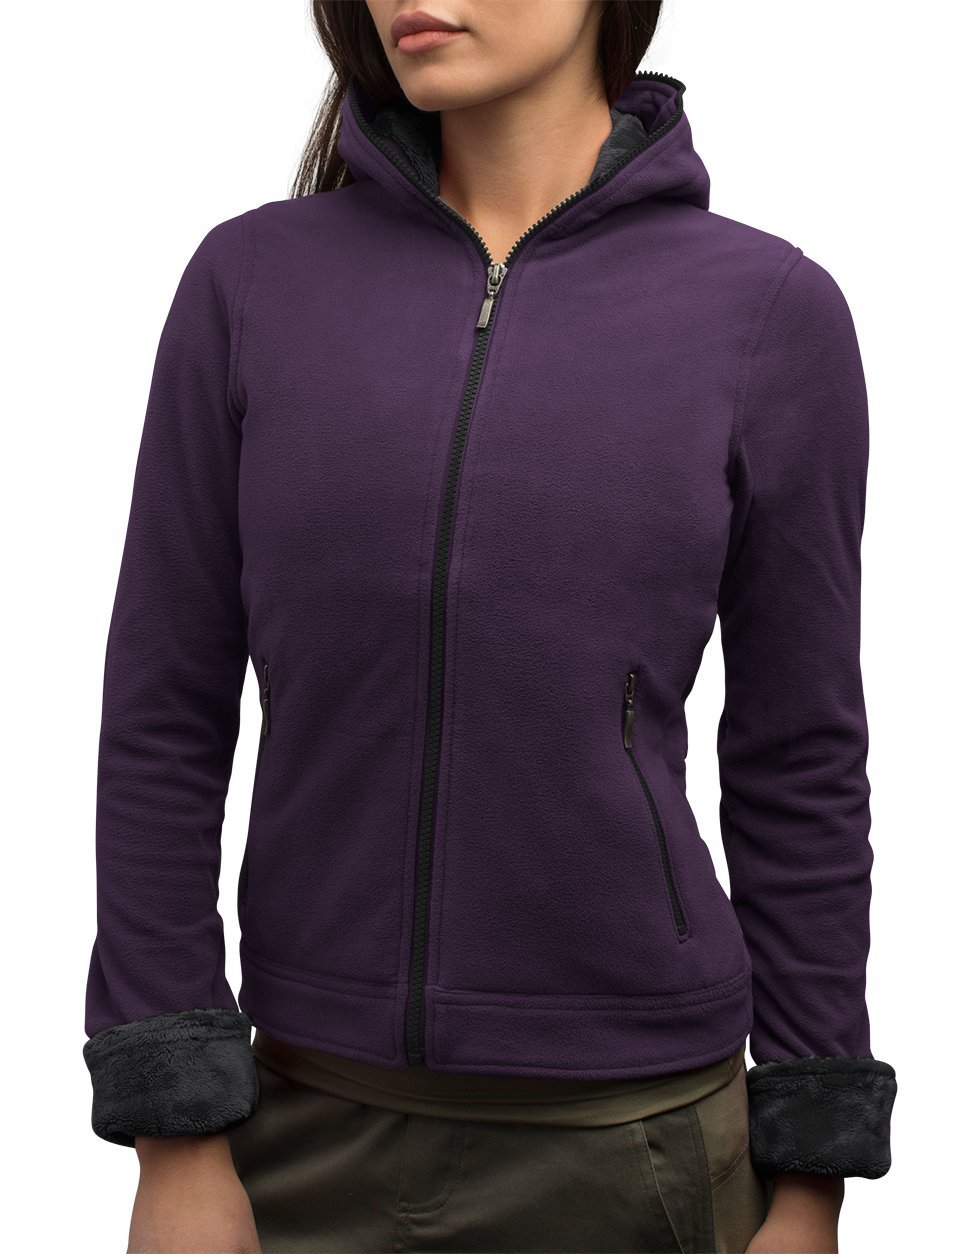 SCOTTeVEST Chloe Hoodie - 14 Pockets - Travel Clothing, Pickpocket Proof (M3, Dare)